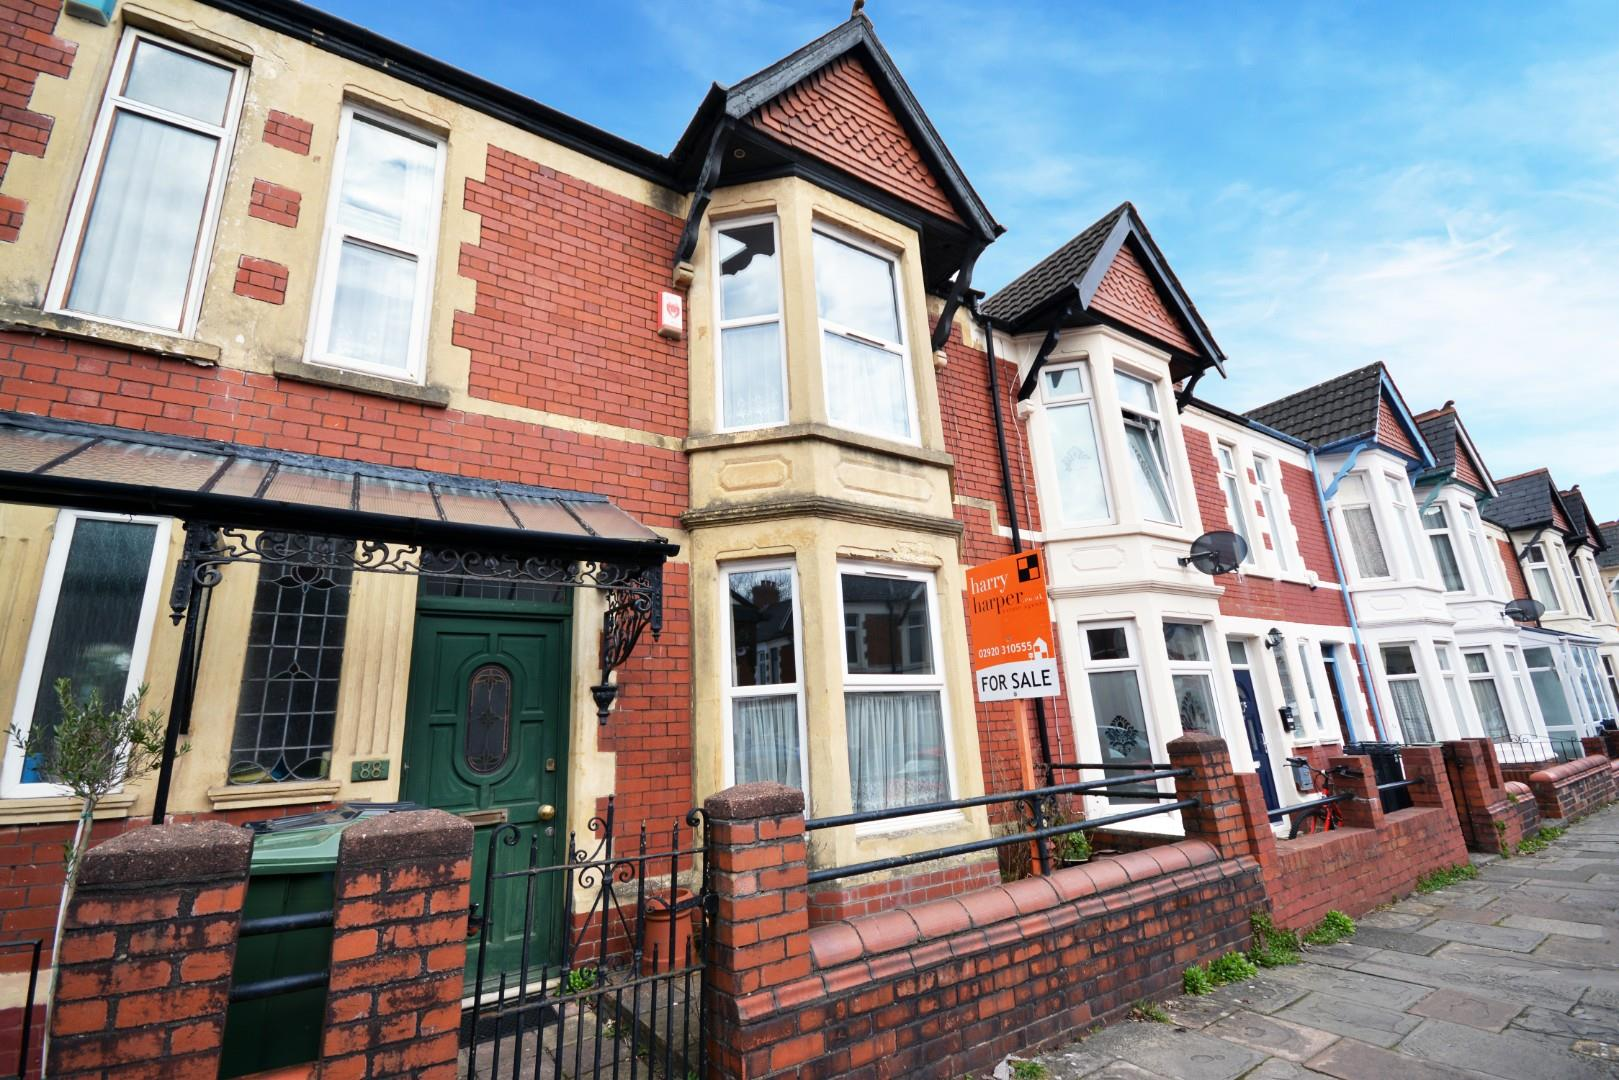 4 bed terraced house for sale in Cosmeston Street, Cardiff, CF24